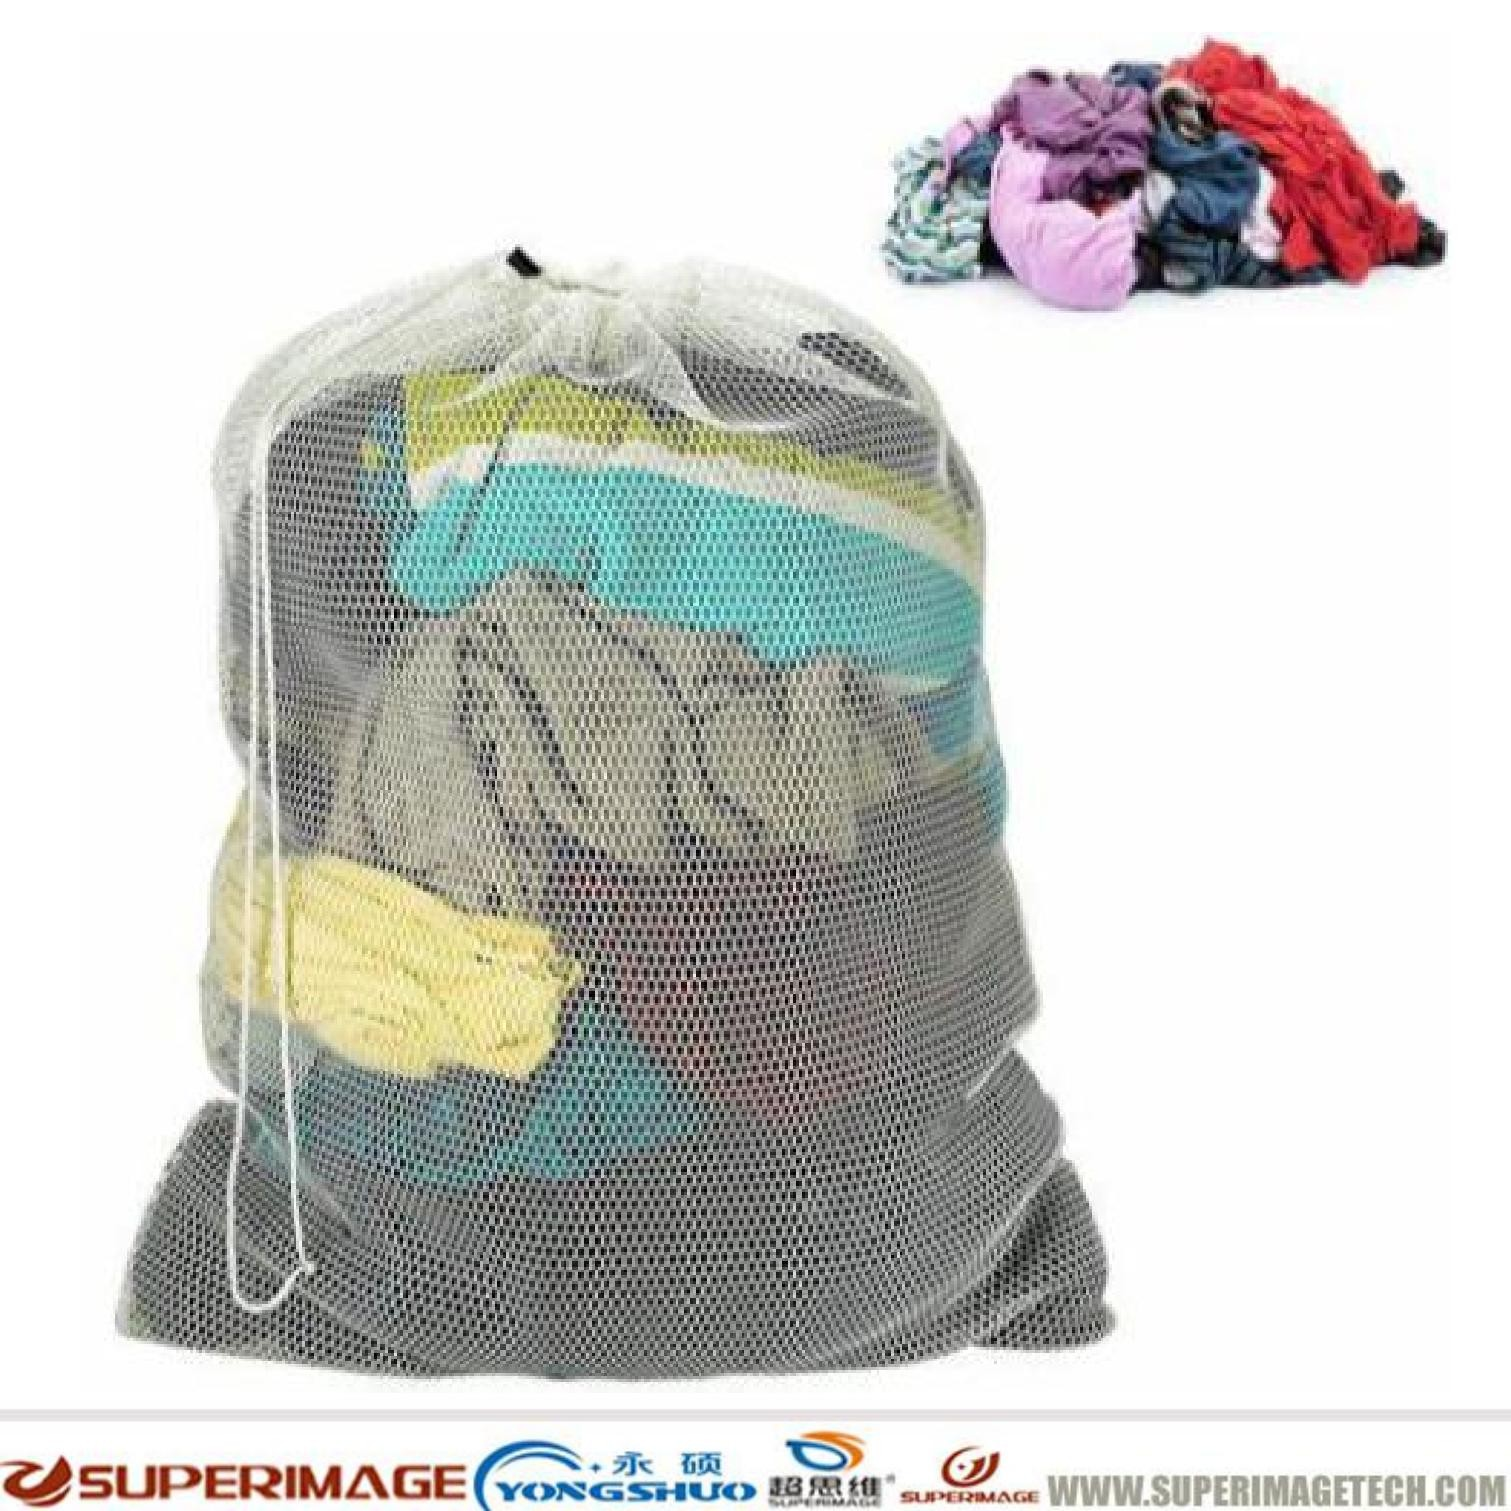 POLYESTER LAUNDRY BAGS/LAUNDRY MESH BAG